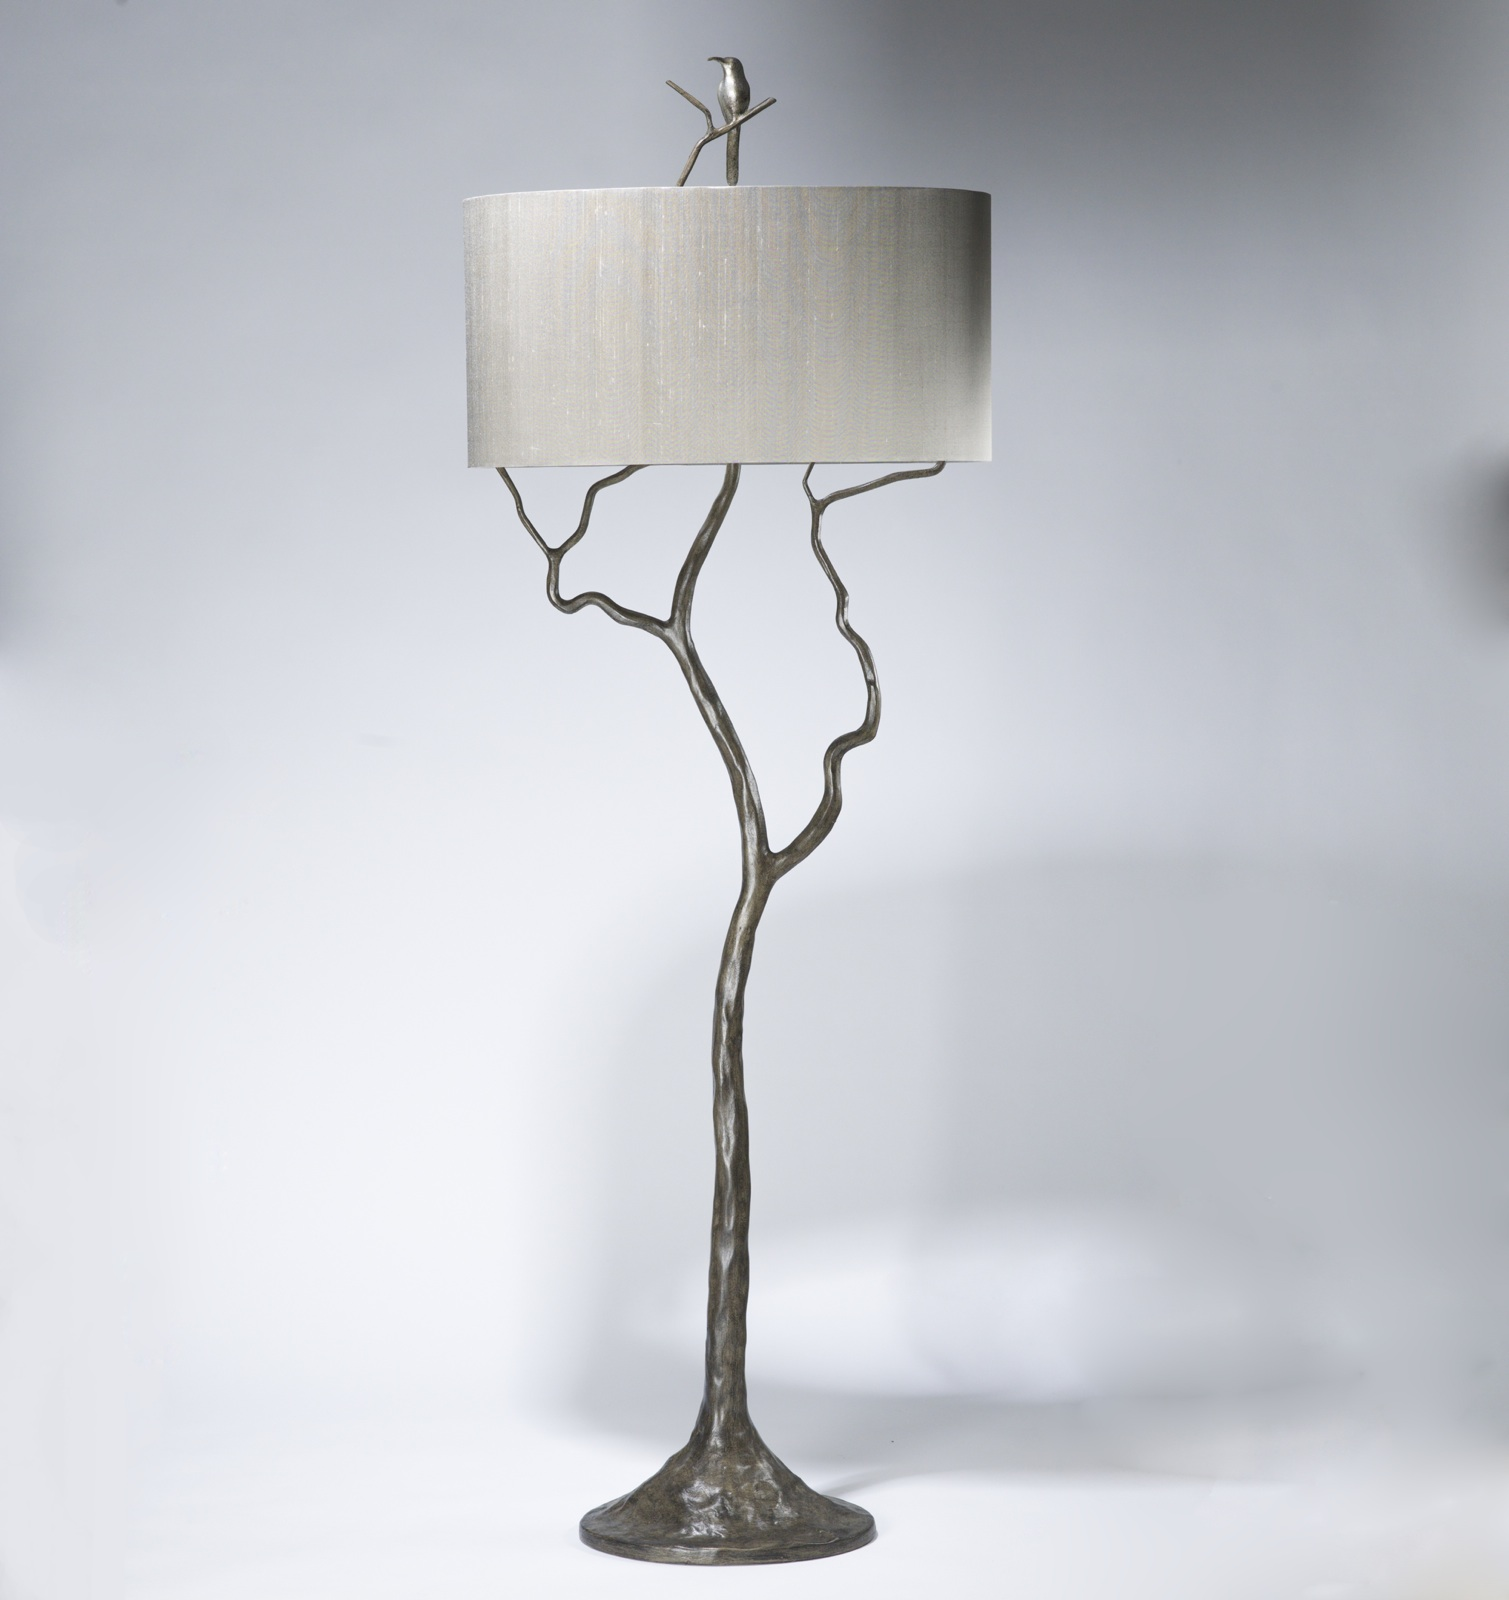 tall tree u0026 humming bird floor l& in grey painted pewter distressed silver leaf finish & Tall tree u0026 humming bird floor lamp in grey painted pewter ...